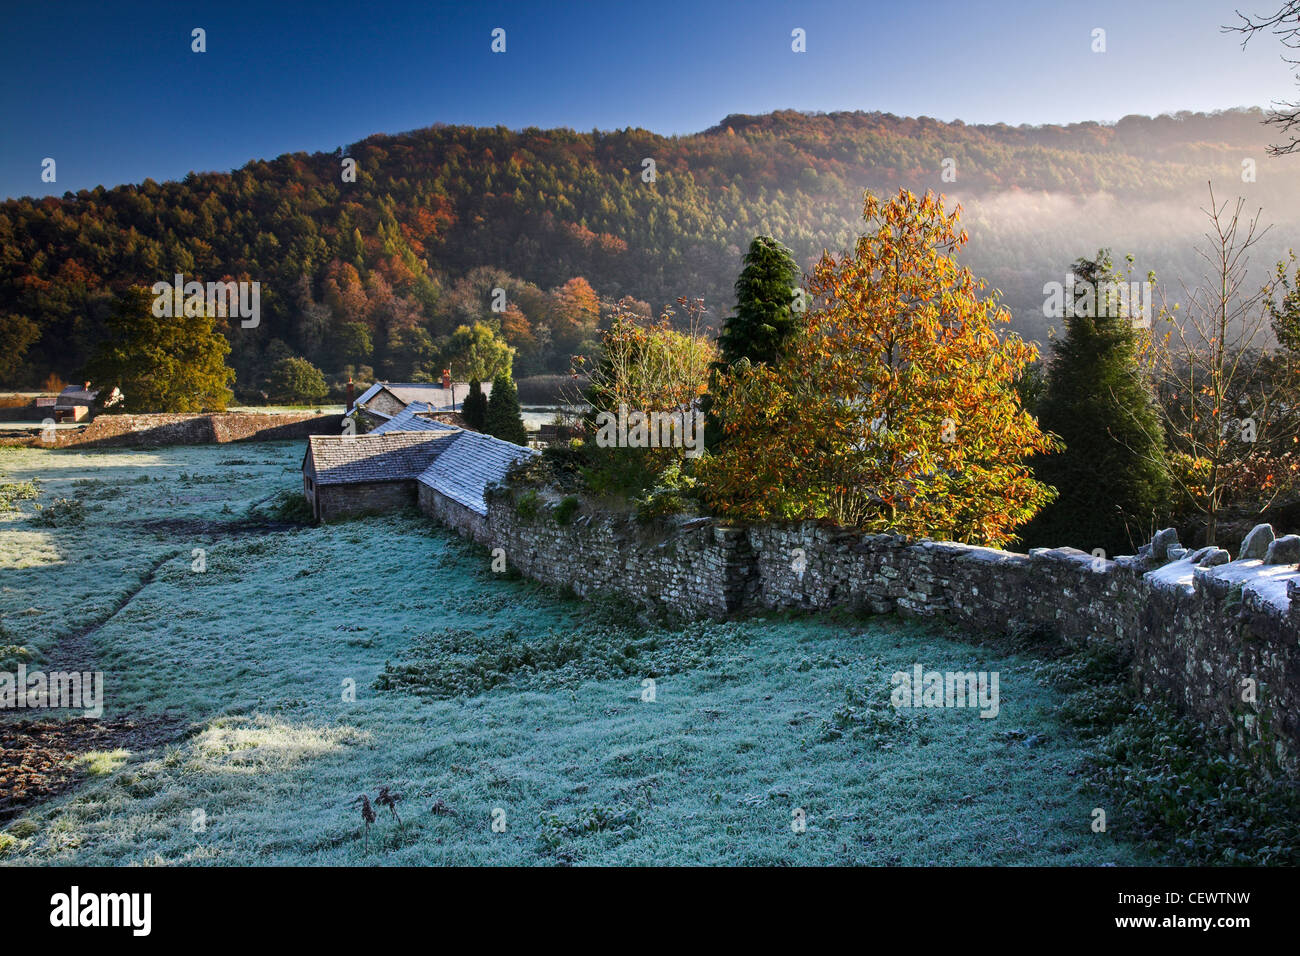 The Wye Valley at Tintern at dawn. With a tidal range of twenty feet, Tintern has learnt to live with tidal flooding, - Stock Image